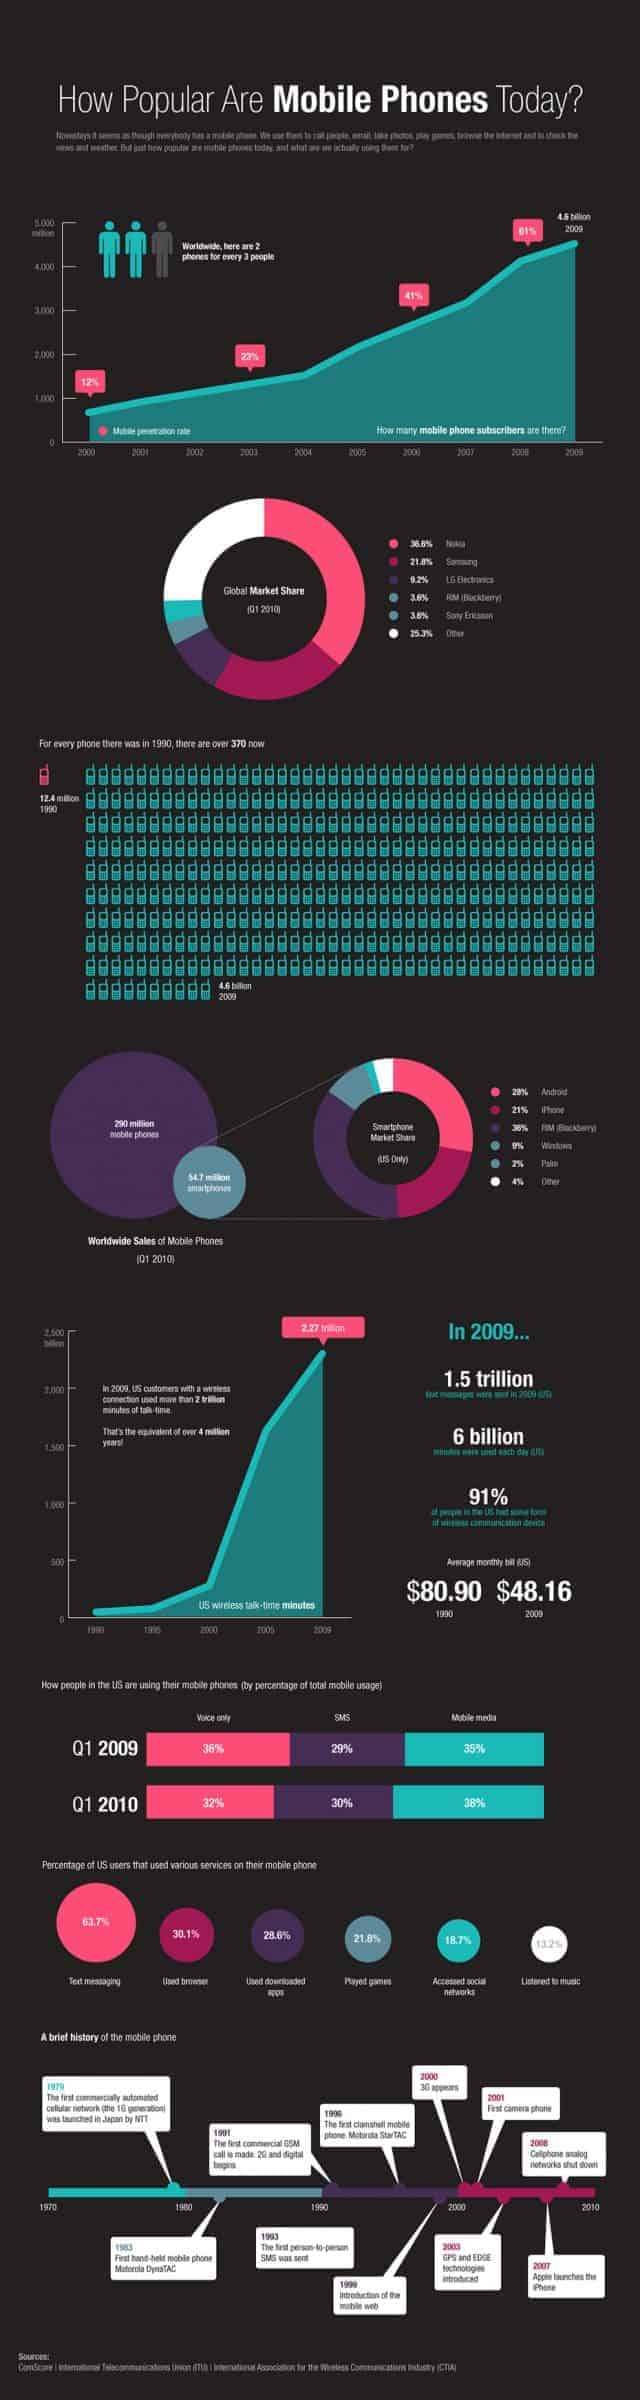 mobile-phones-infographic-640x2400